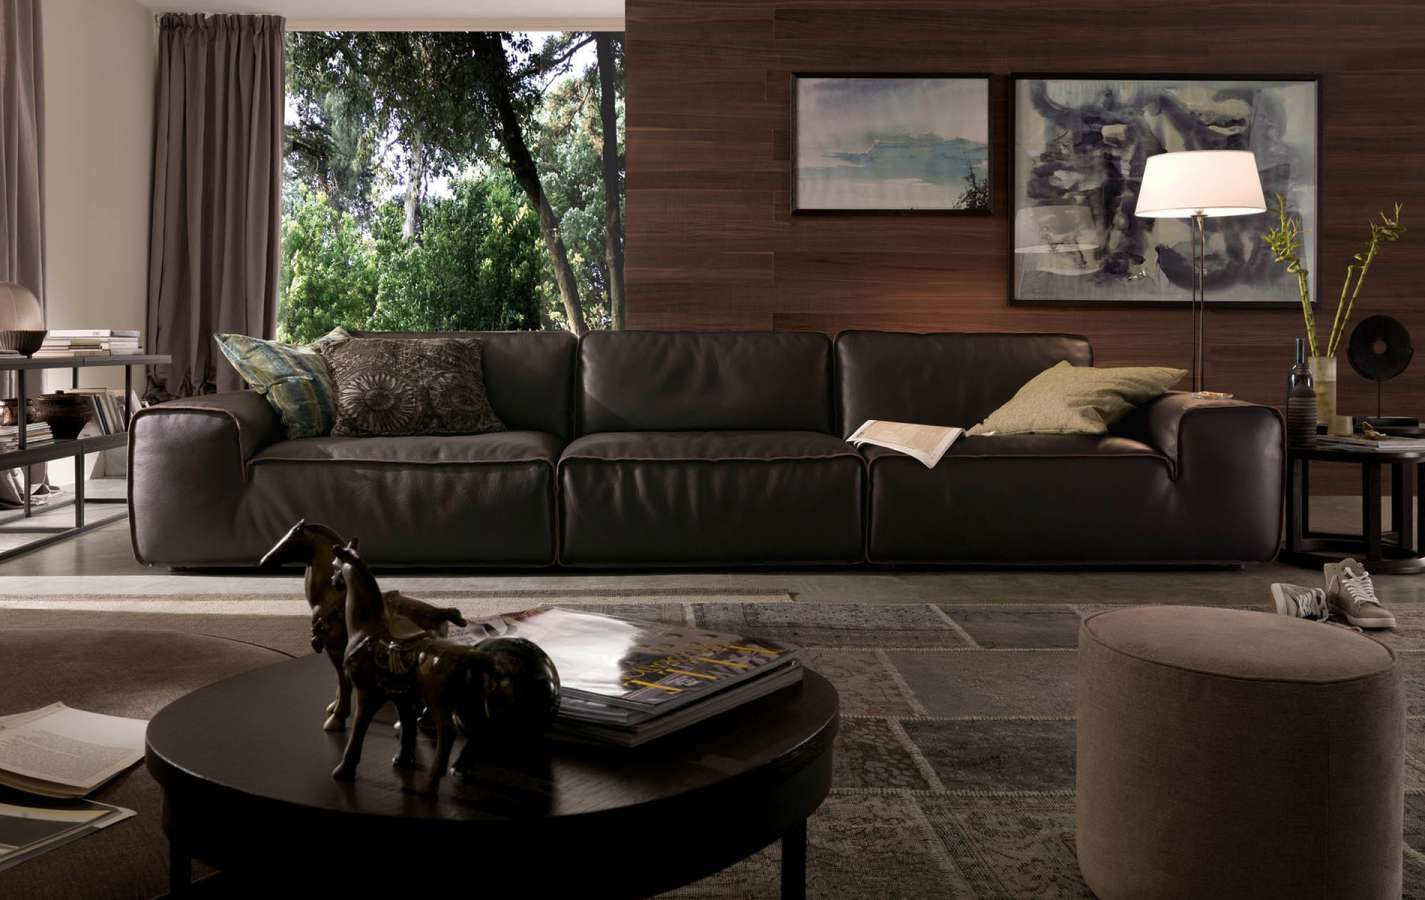 Divani chateau d ax leather sofa - Modern Furniture Store In Boston Introduces Avenue Leather Sofa By Chateau D Ax Avenue Leather Sofa Is Available At Nova Interiors In Variety Of